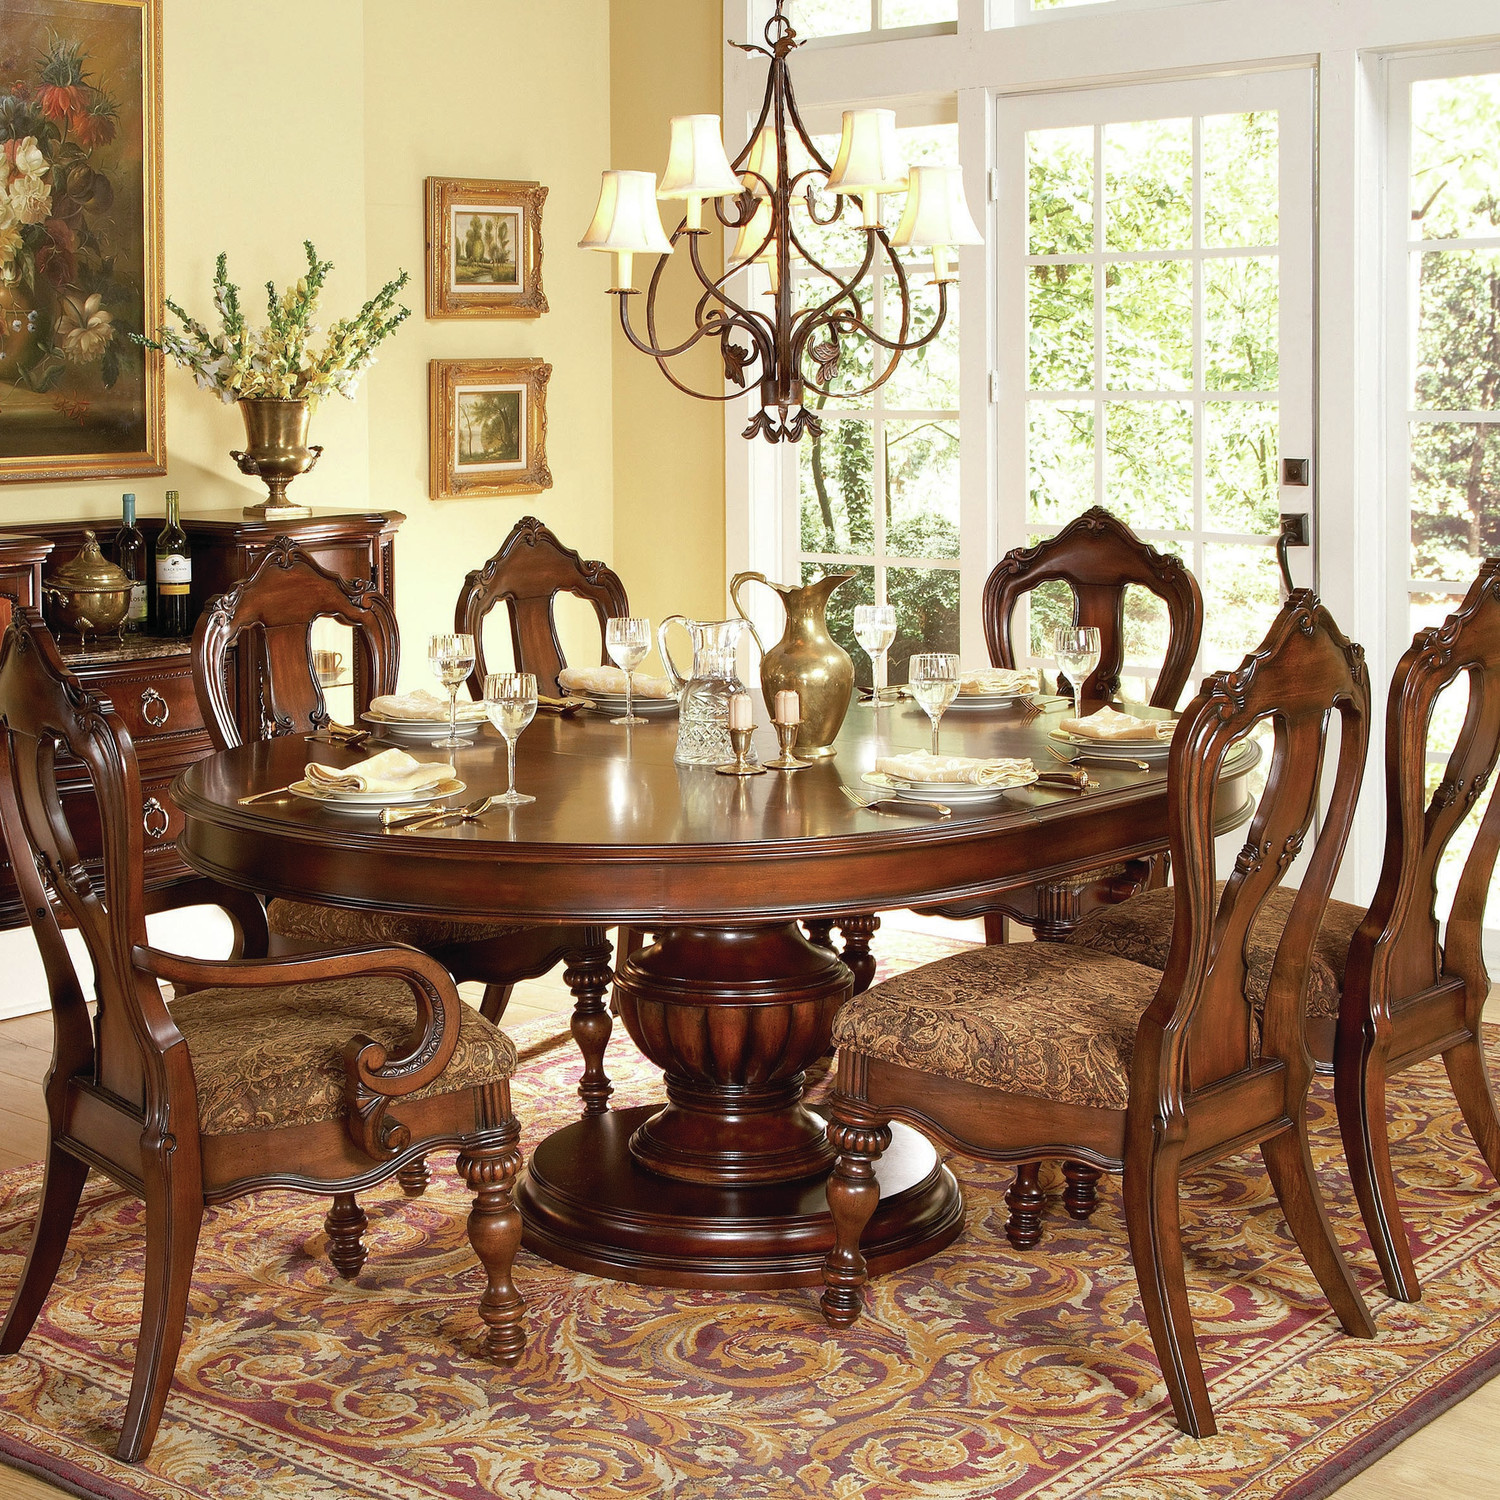 Getting a round dining room table for 6 by your own for Dining room sets with round tables